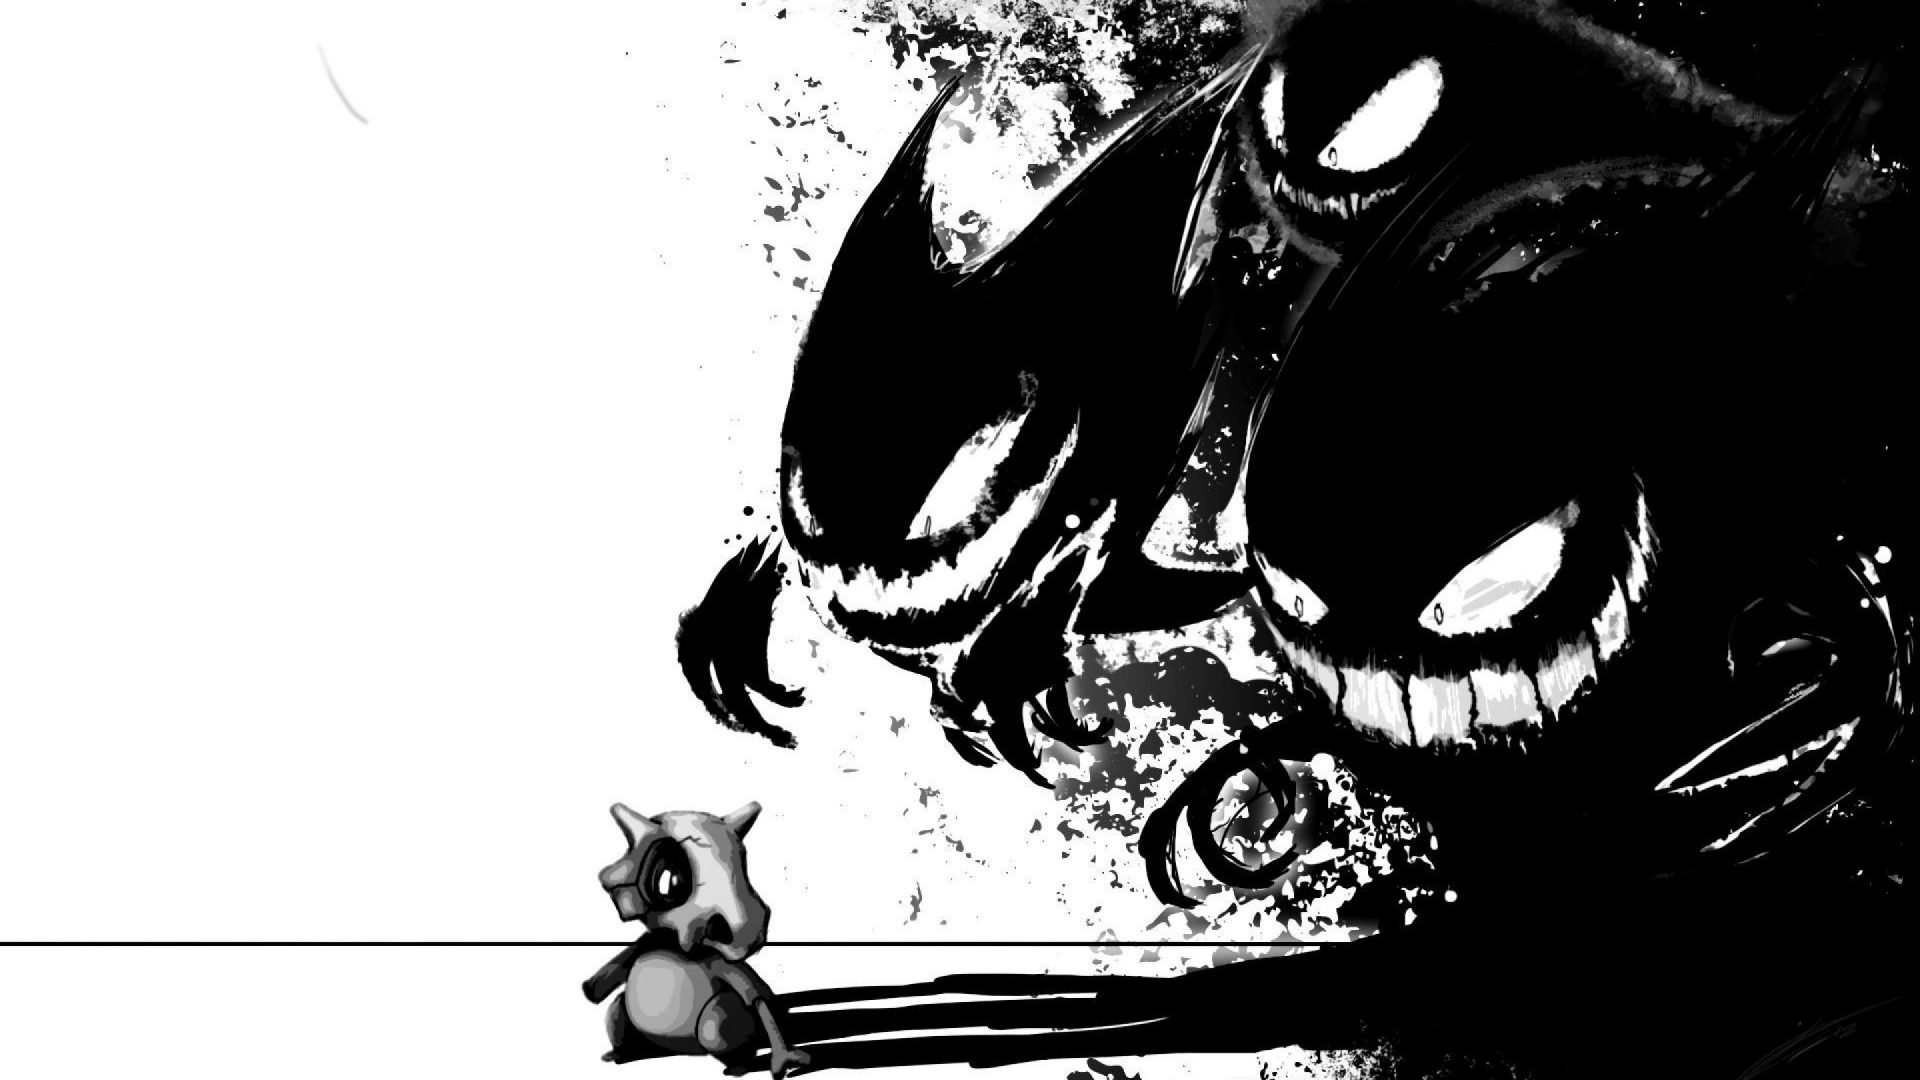 1080p Black And White Anime Wallpaper Doraemon